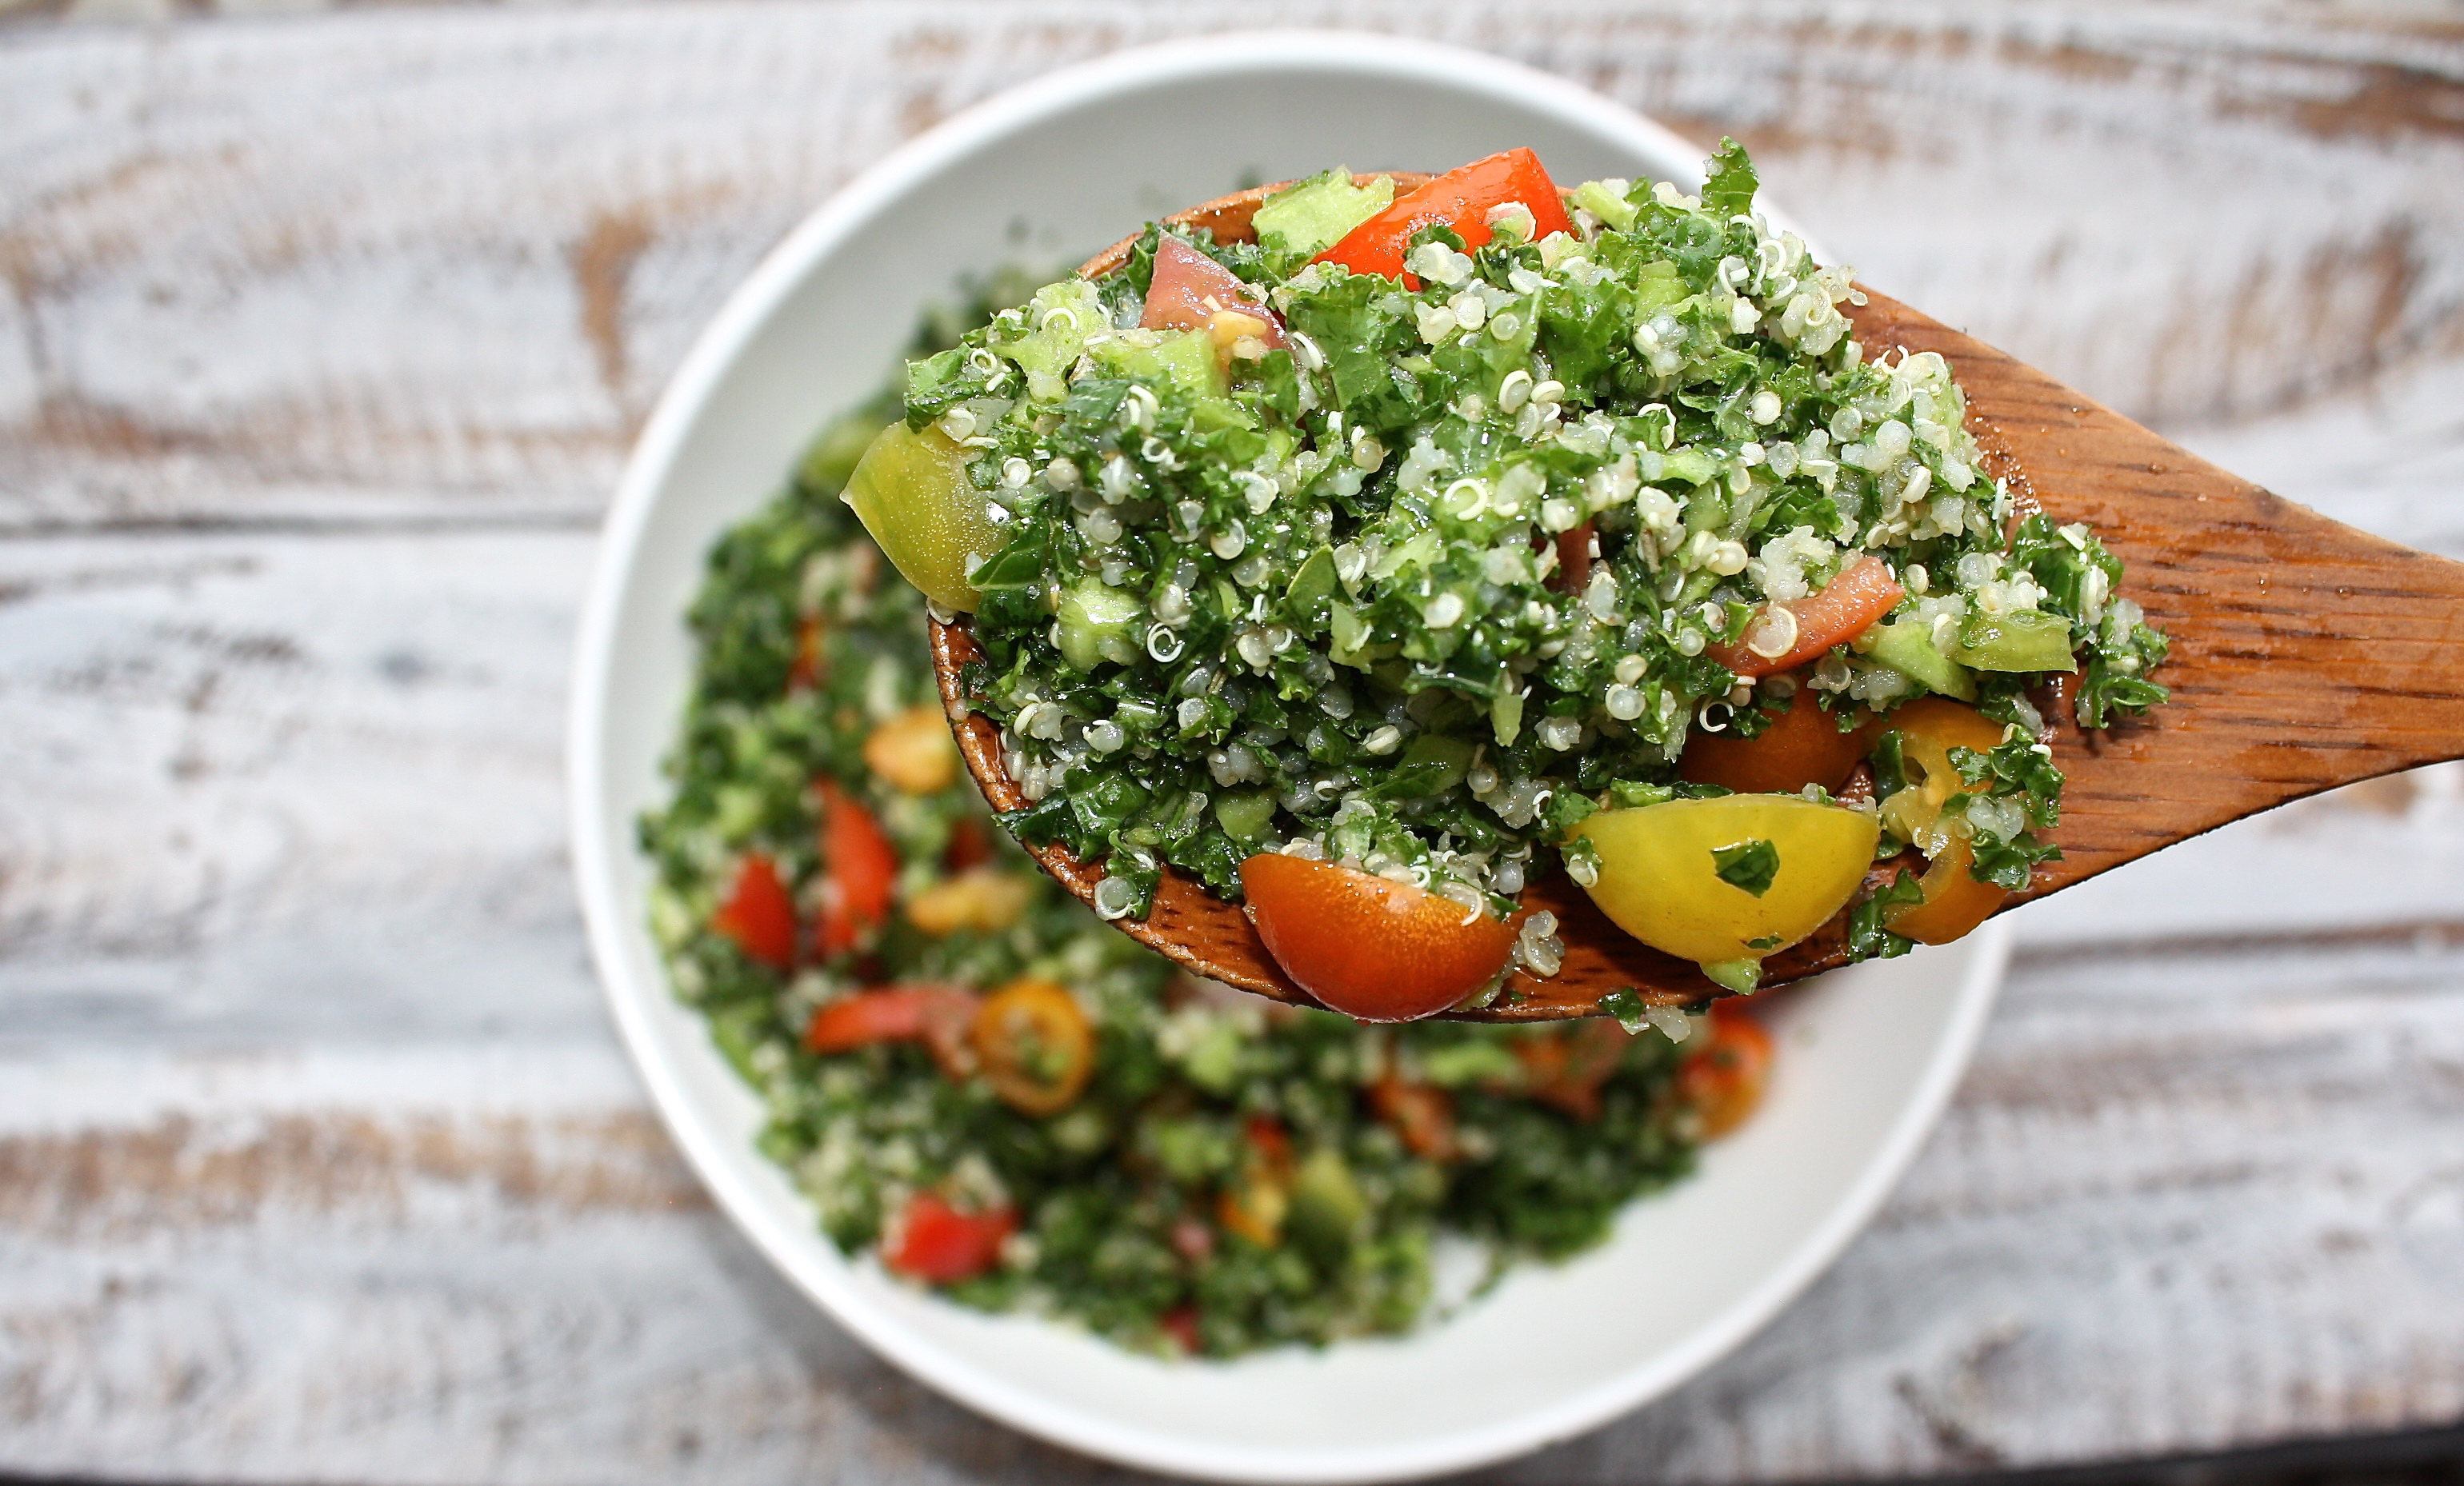 kale tomato quinoa salad with lemon dressing for a digestive